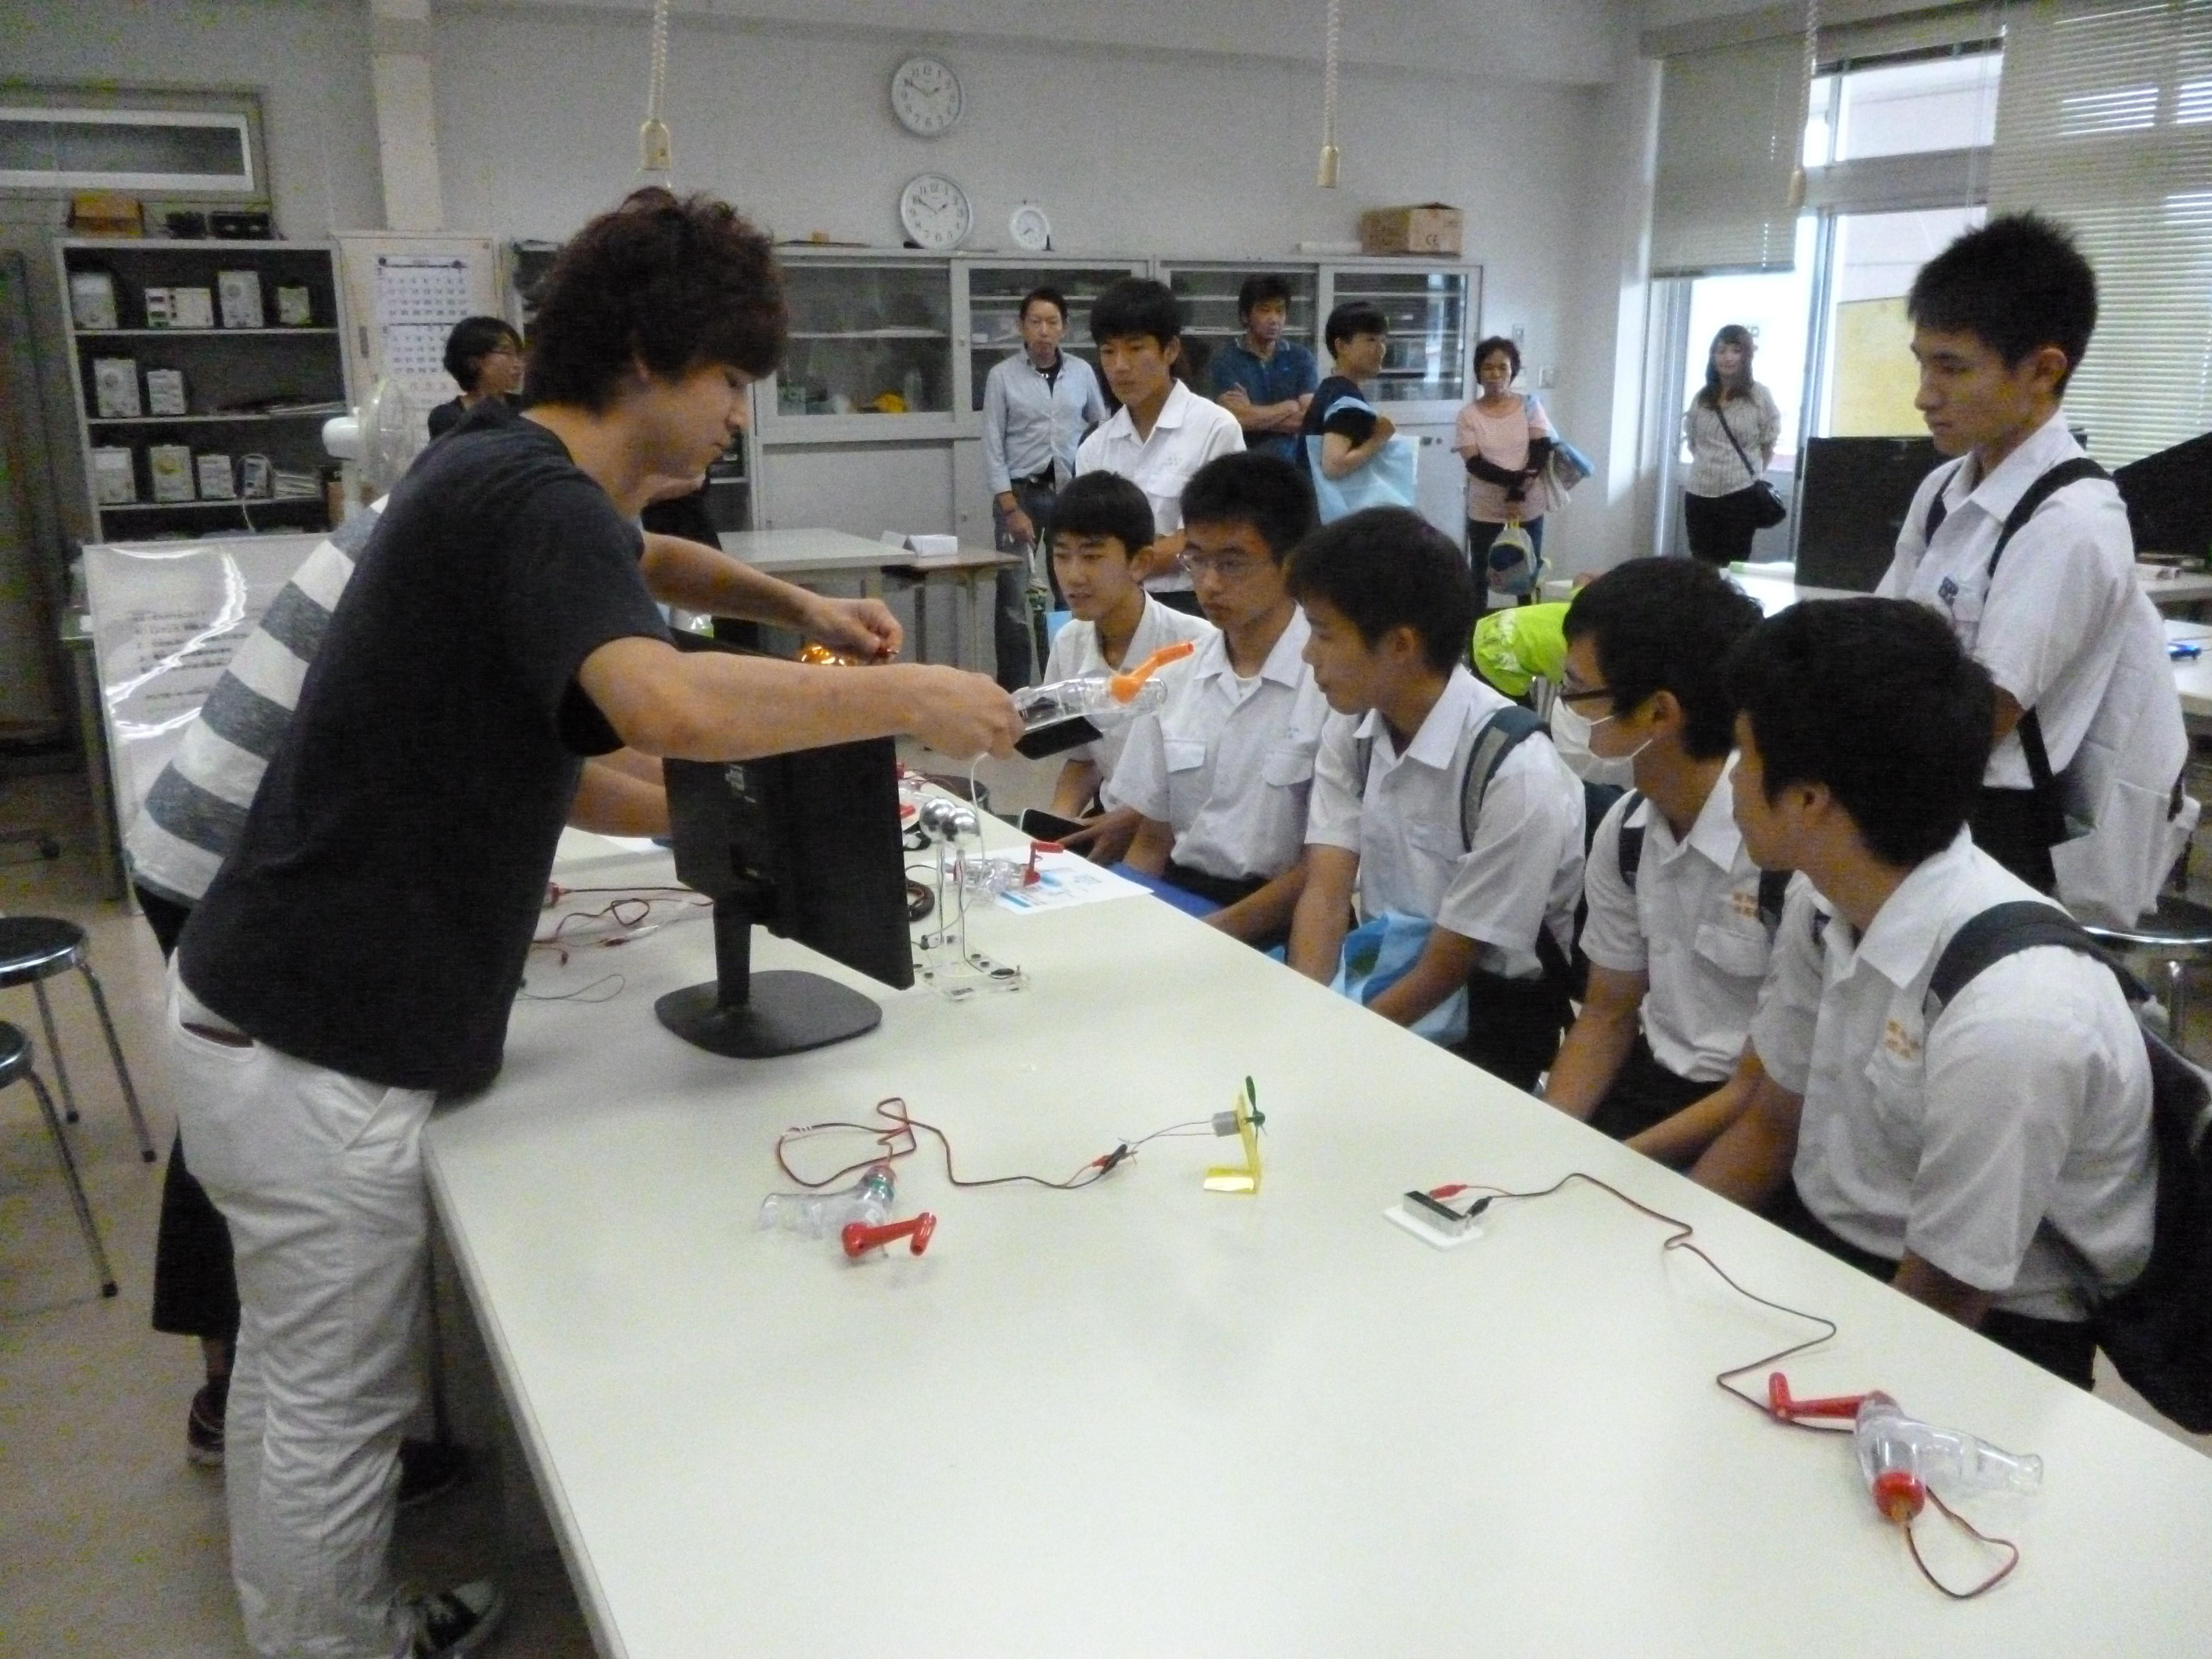 Explanation by students in Campus tour